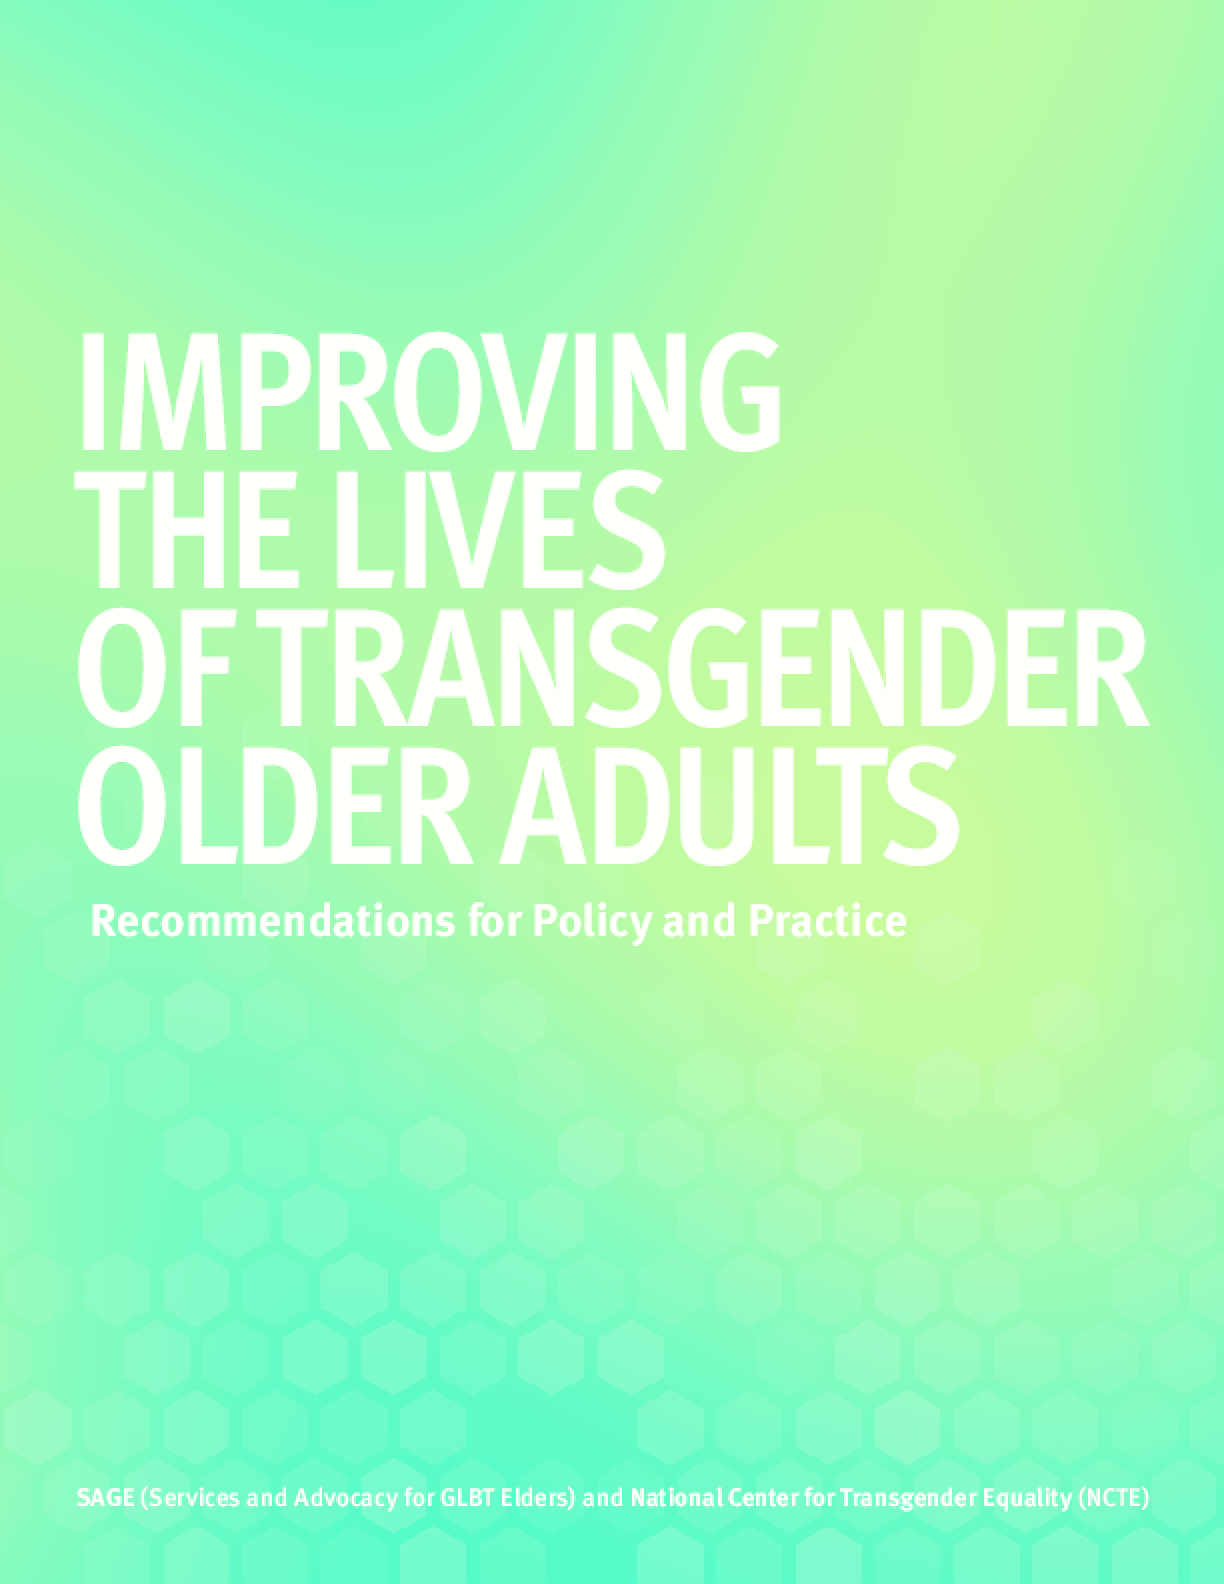 Improving the Lives of Transgender Older Adults: Recommendations for Policy and Practice